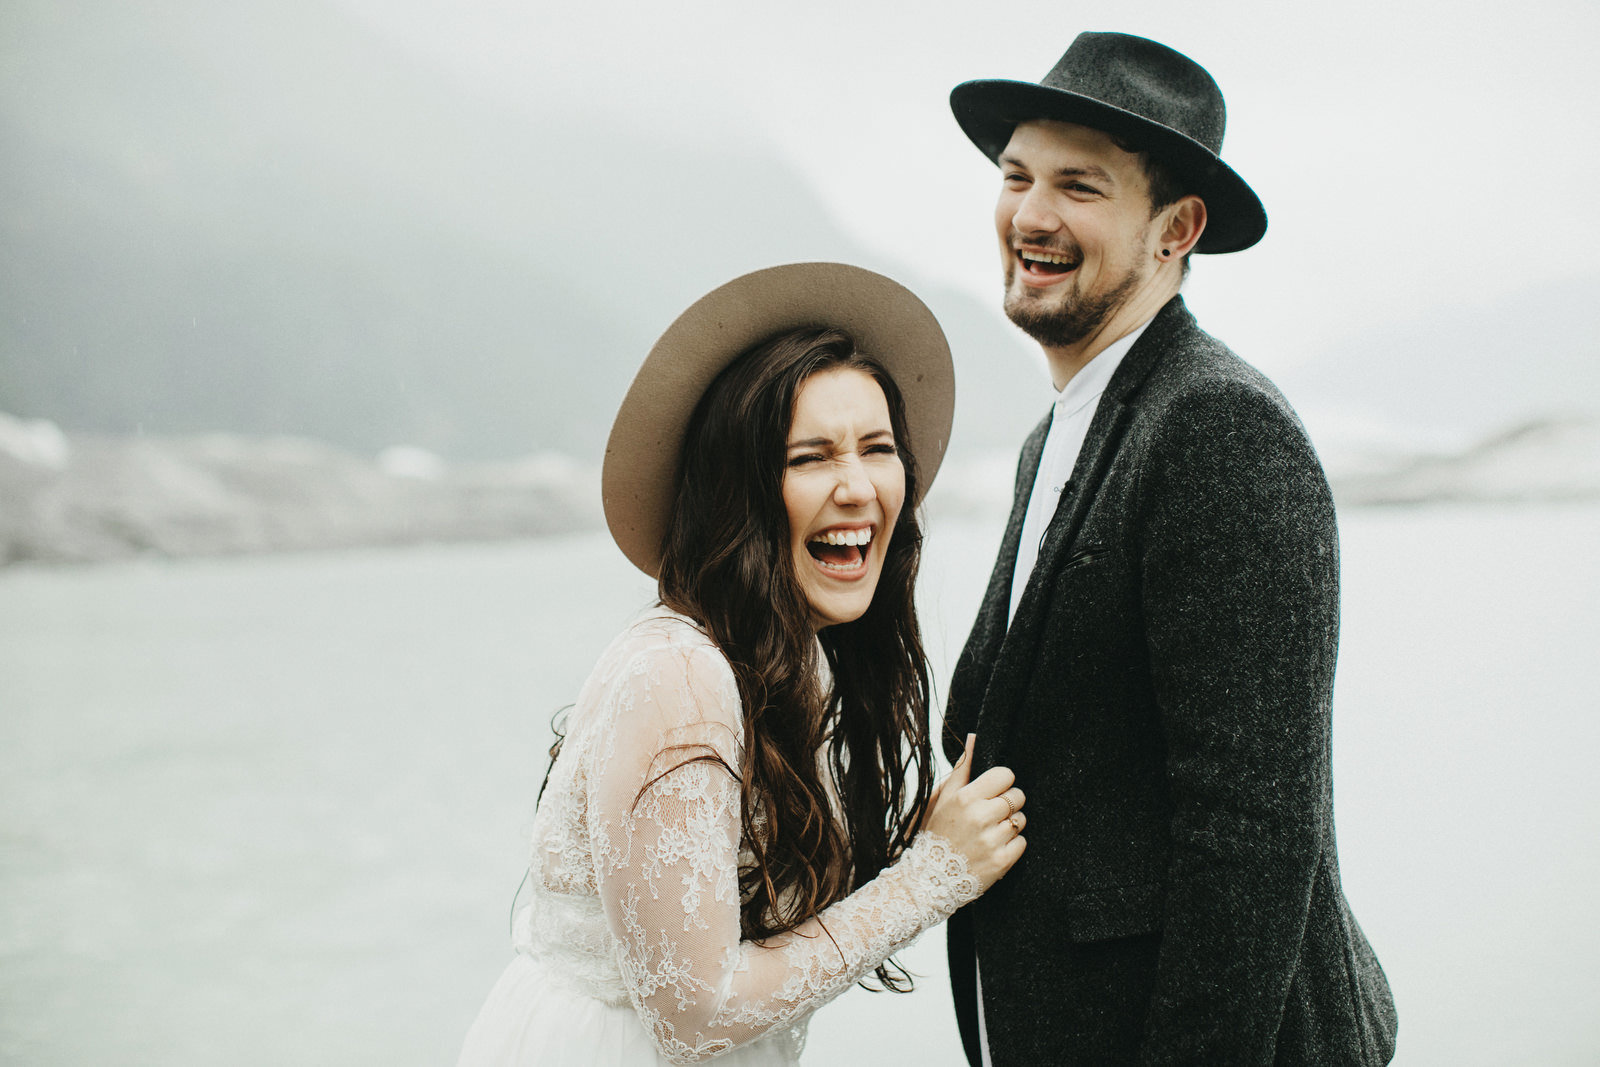 athena-and-camron-alaska-elopement-wedding-inspiration-india-earl-athena-grace-glacier-lagoon-wedding88